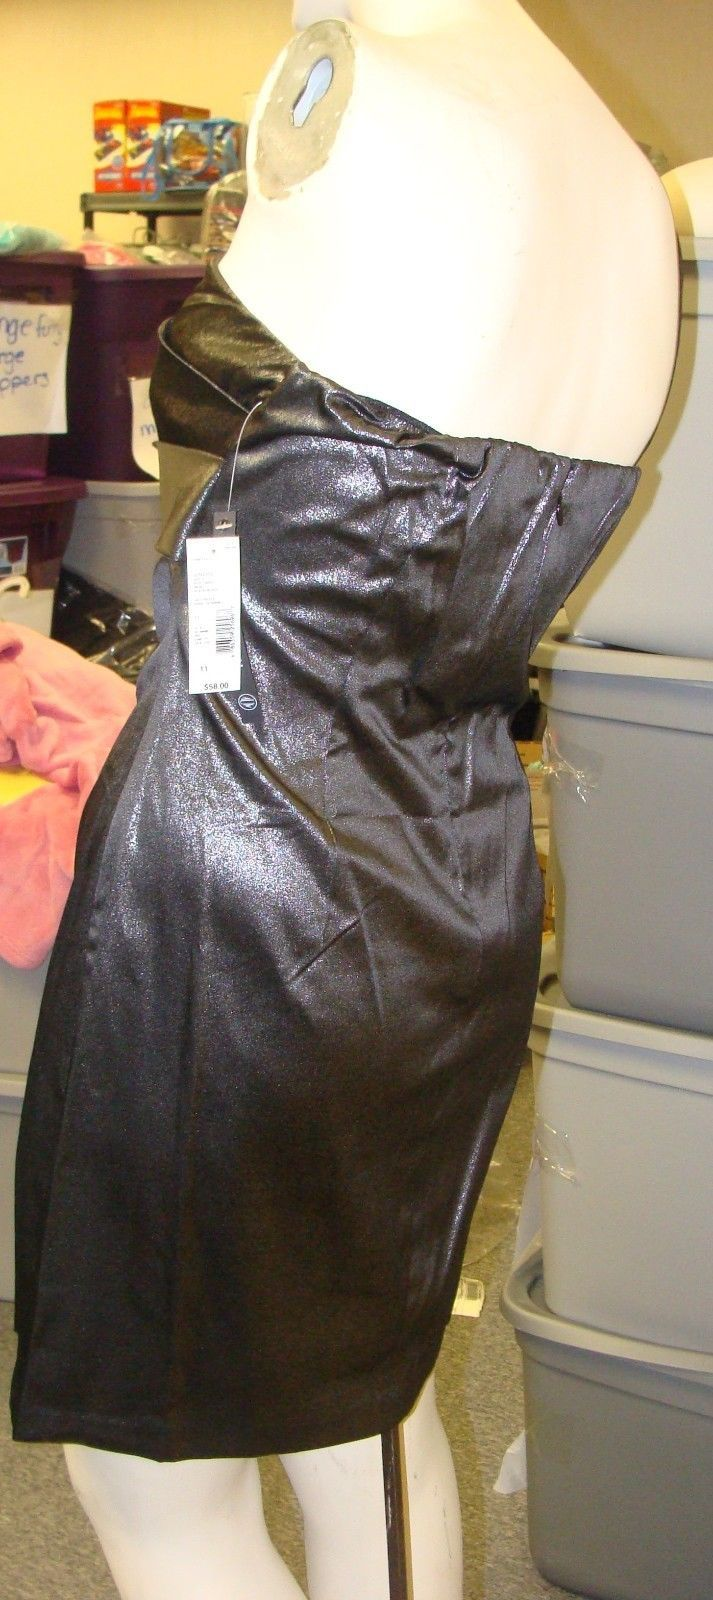 NEW WOMENS JUNIORS SIZE 7 FAUX LEATHER BLACK SILVER METALLIC ONE STRAP DRESS